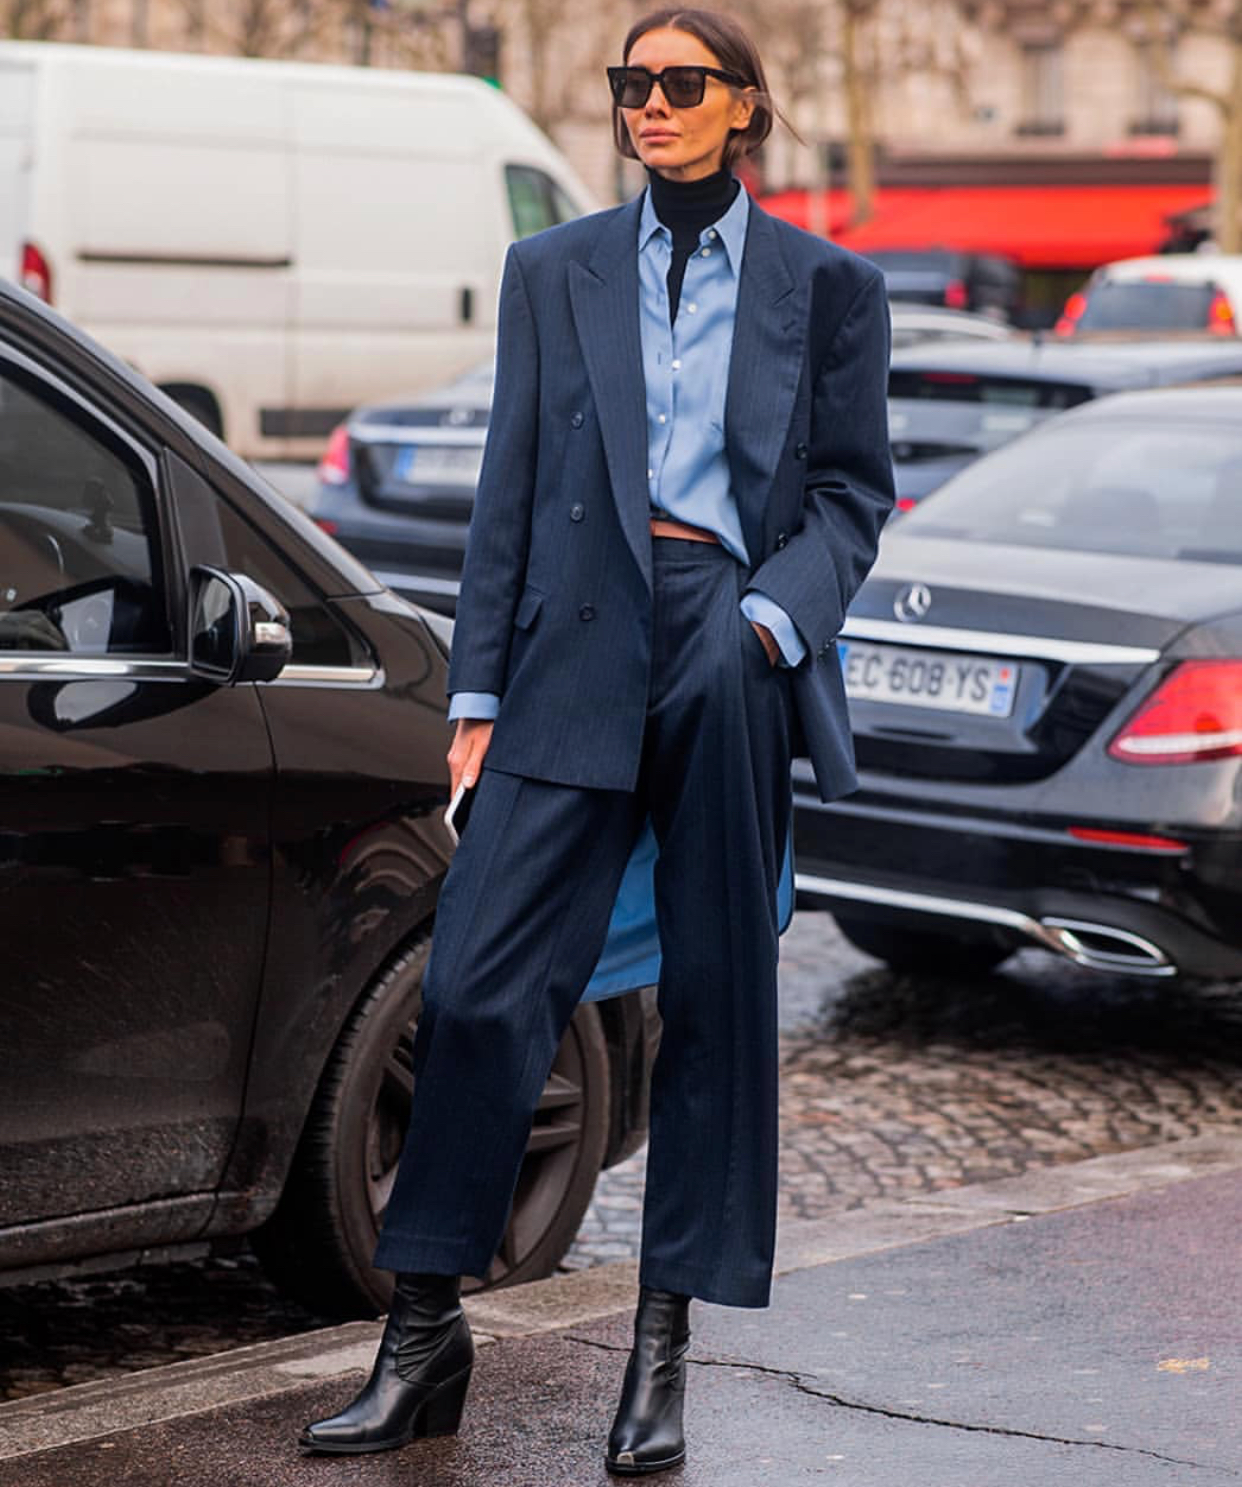 Style Inspiration: Trouser Suits for Springtime & Anytime